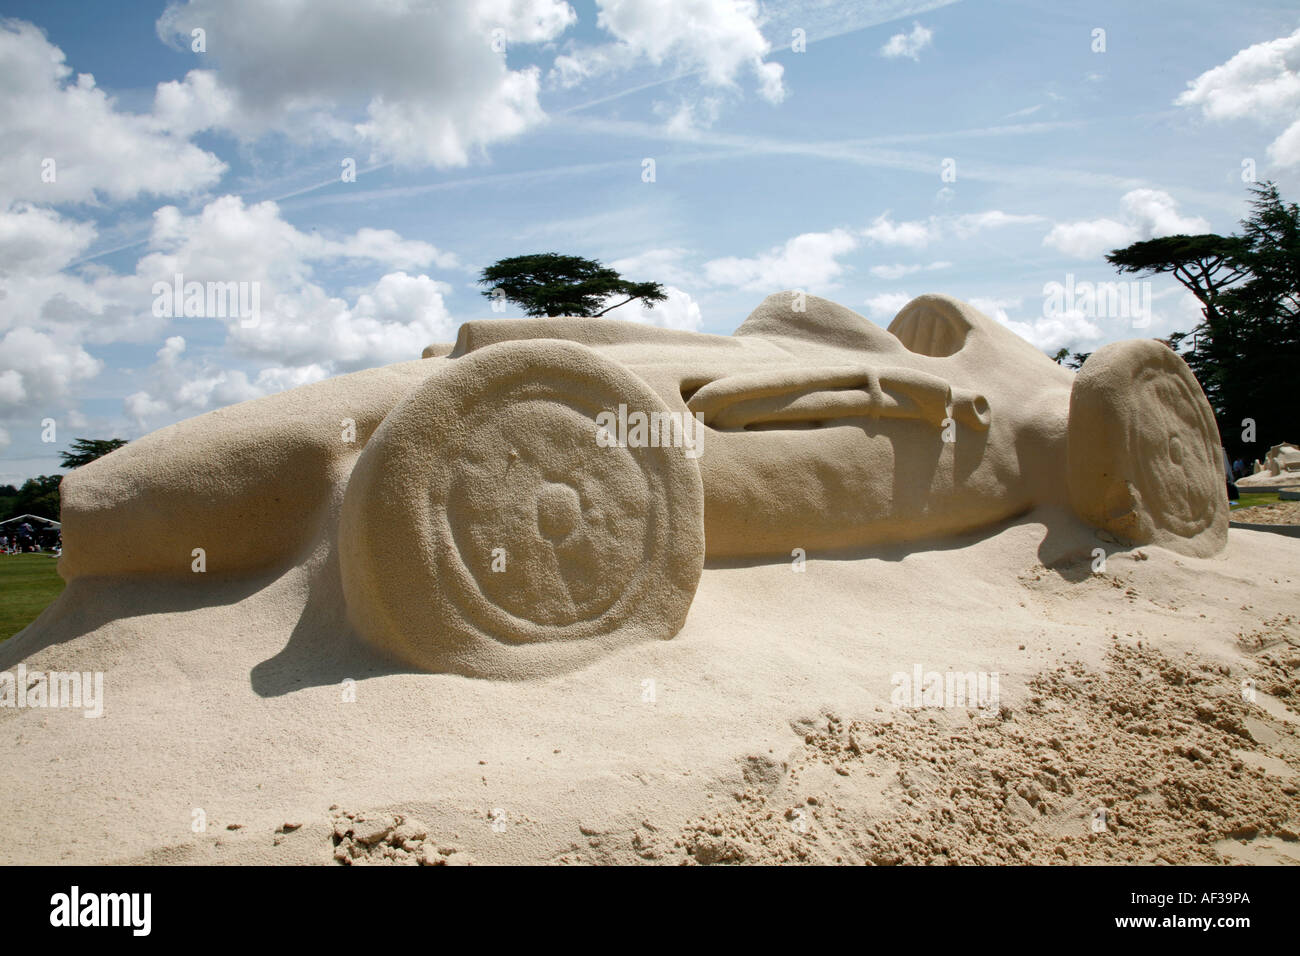 Life size sand sculpture of historic racing car at the Goodwood Festival of Speed, England. - Stock Image